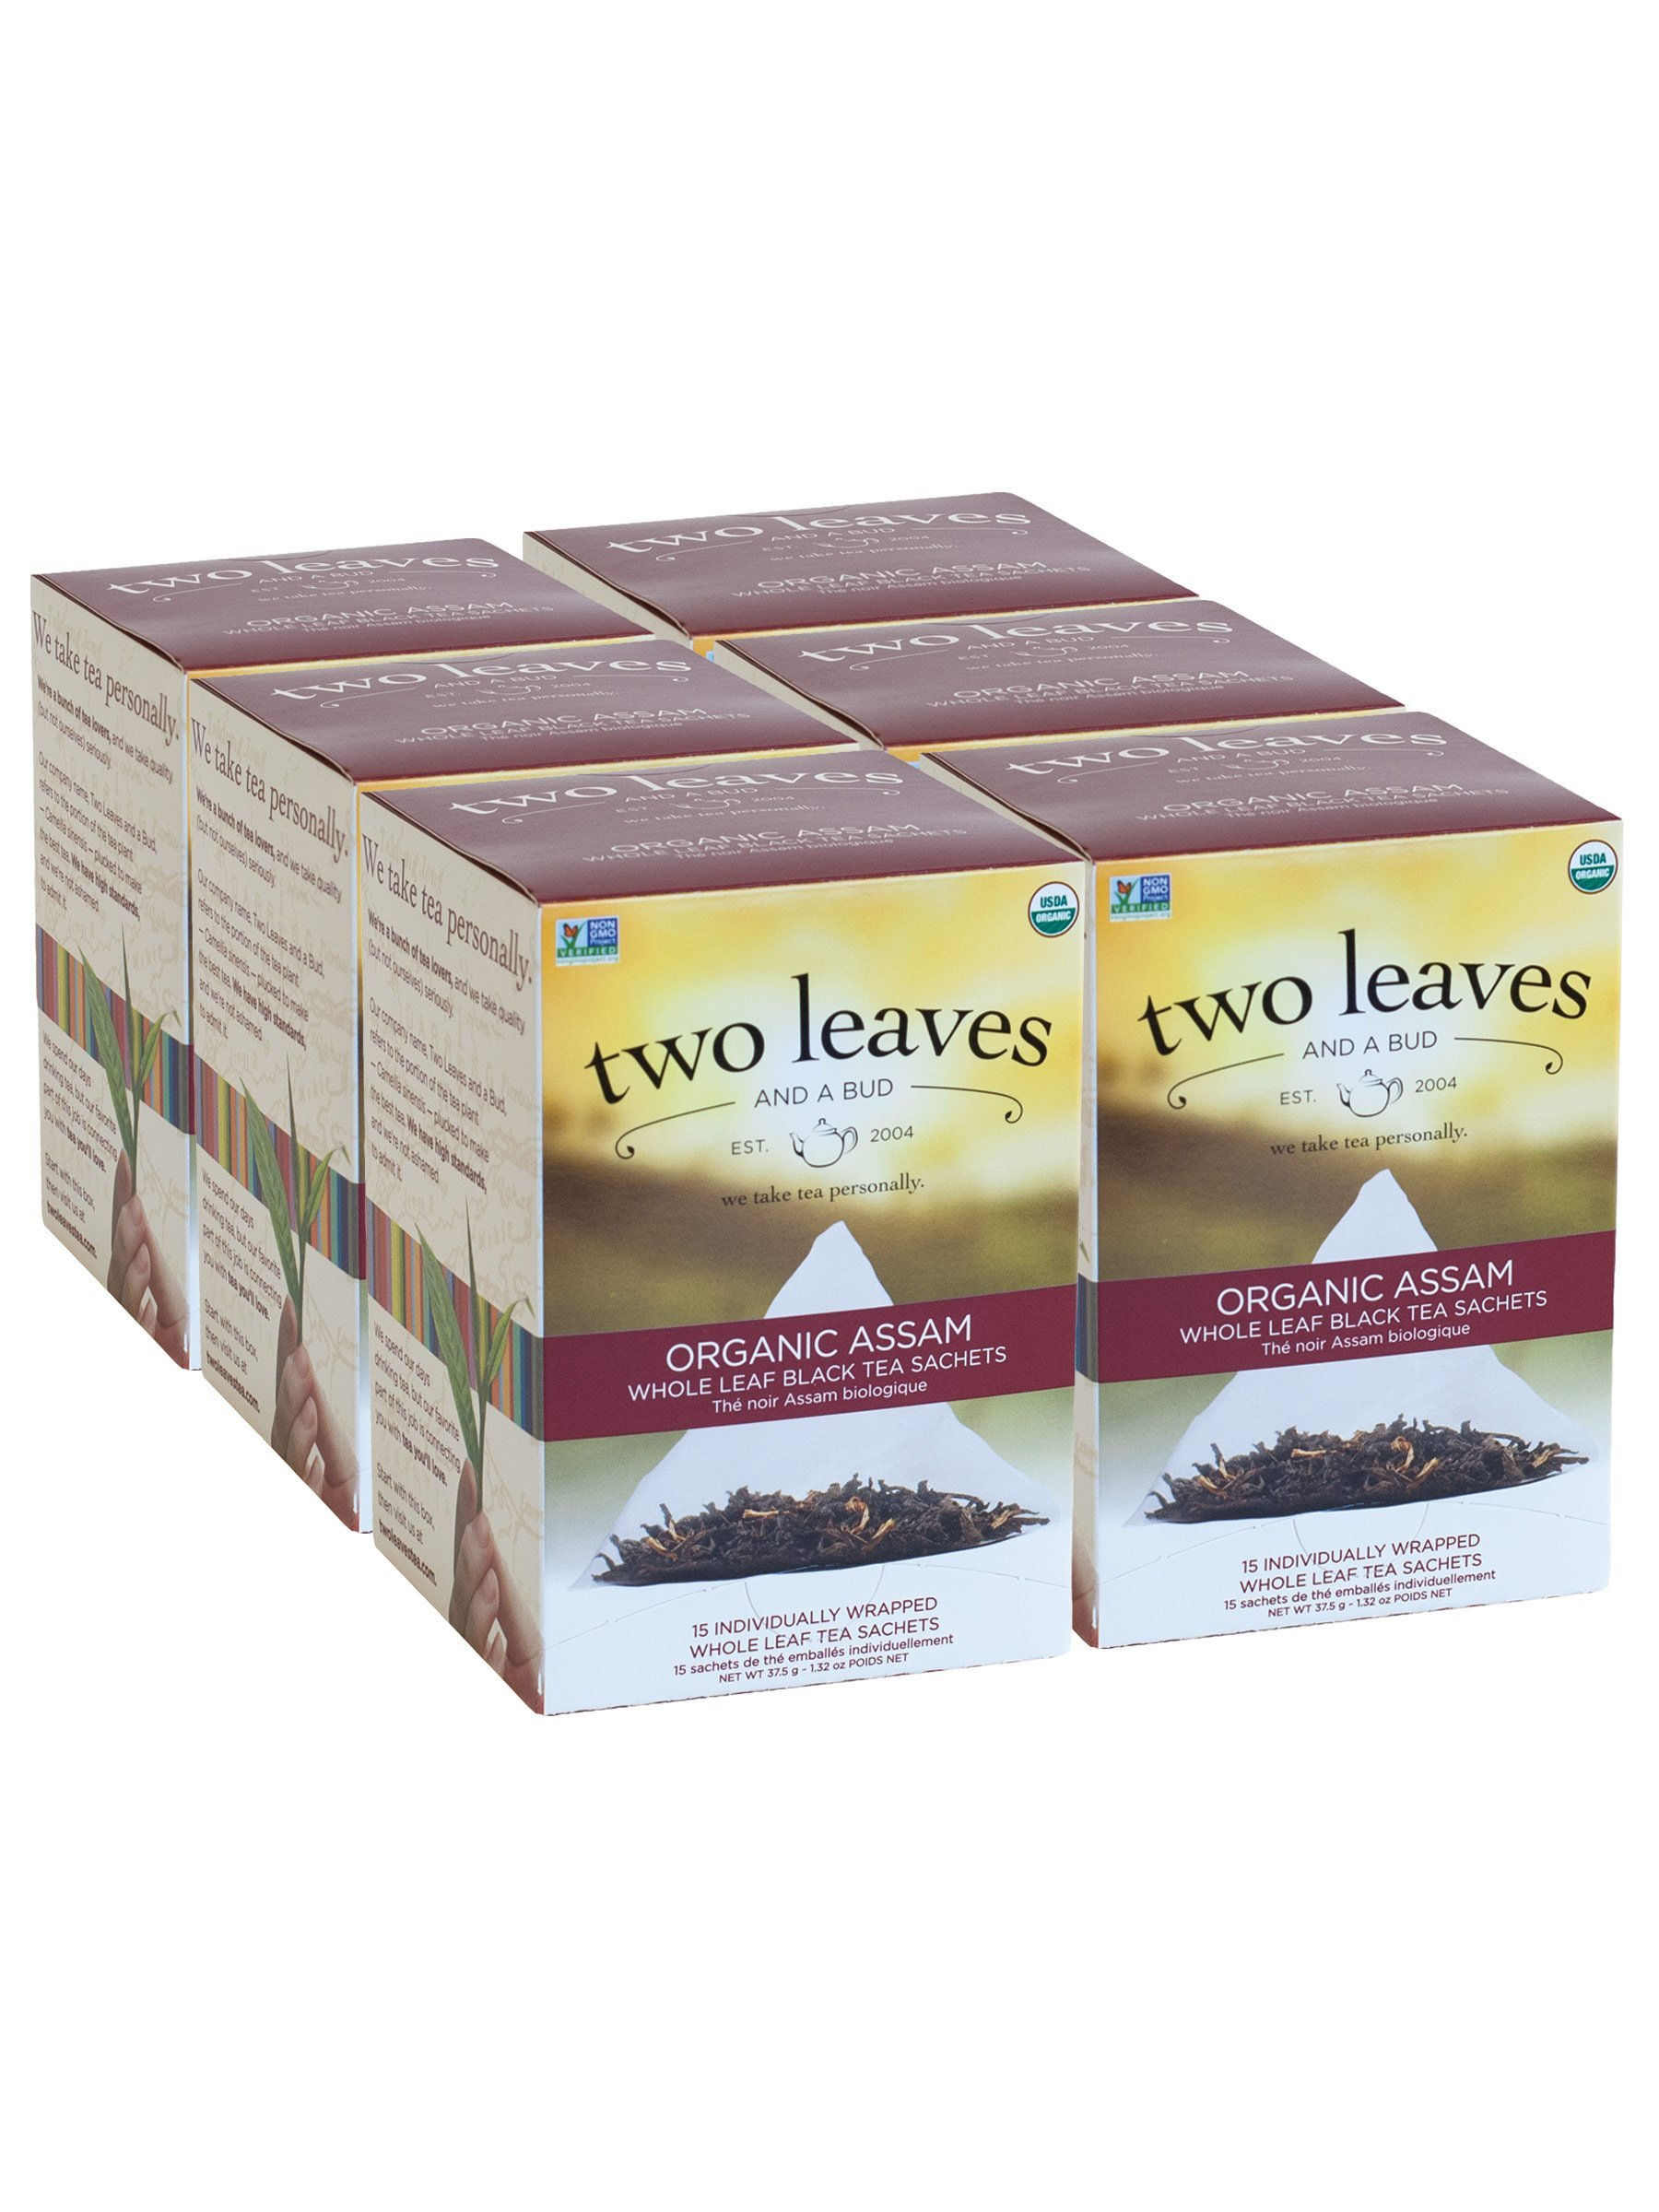 Two Leaves and a Bud Organic Assam Black Tea Bags, 15 Count (Pack of 6) Organic Whole Leaf Full Caffeine Black Tea in Pyramid Sachet Bags, Delicious Hot or Iced with Milk or Sugar or Honey or Plain by Two Leaves and a Bud